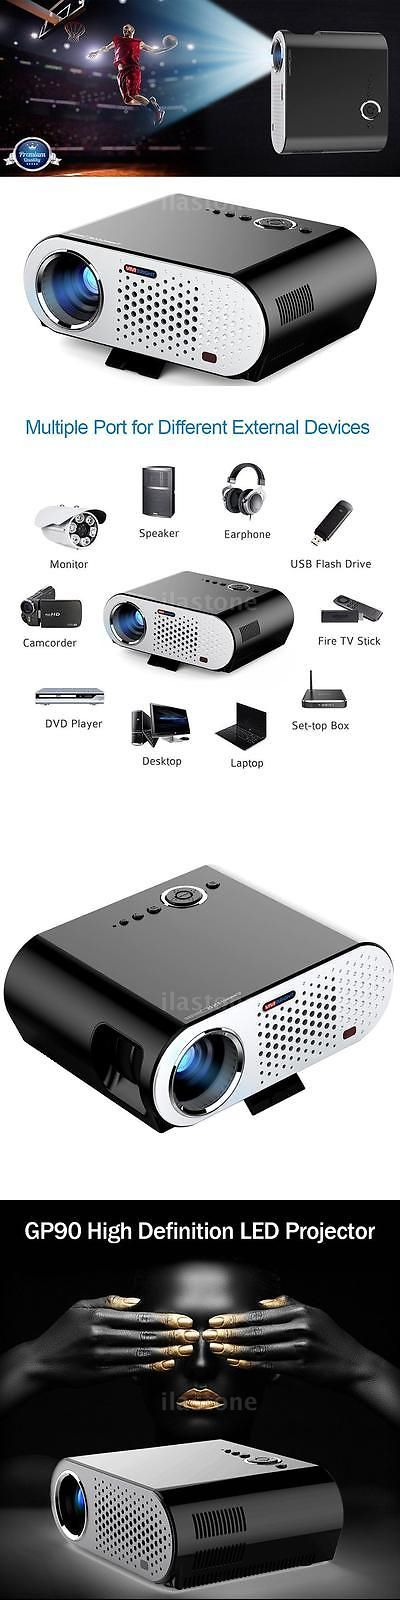 Home Theater Projectors: 280 Multimedia 3200 Lumens Hd Led Projector Home Theater Vga Av Usb 1080P R6y5 -> BUY IT NOW ONLY: $149.95 on eBay!